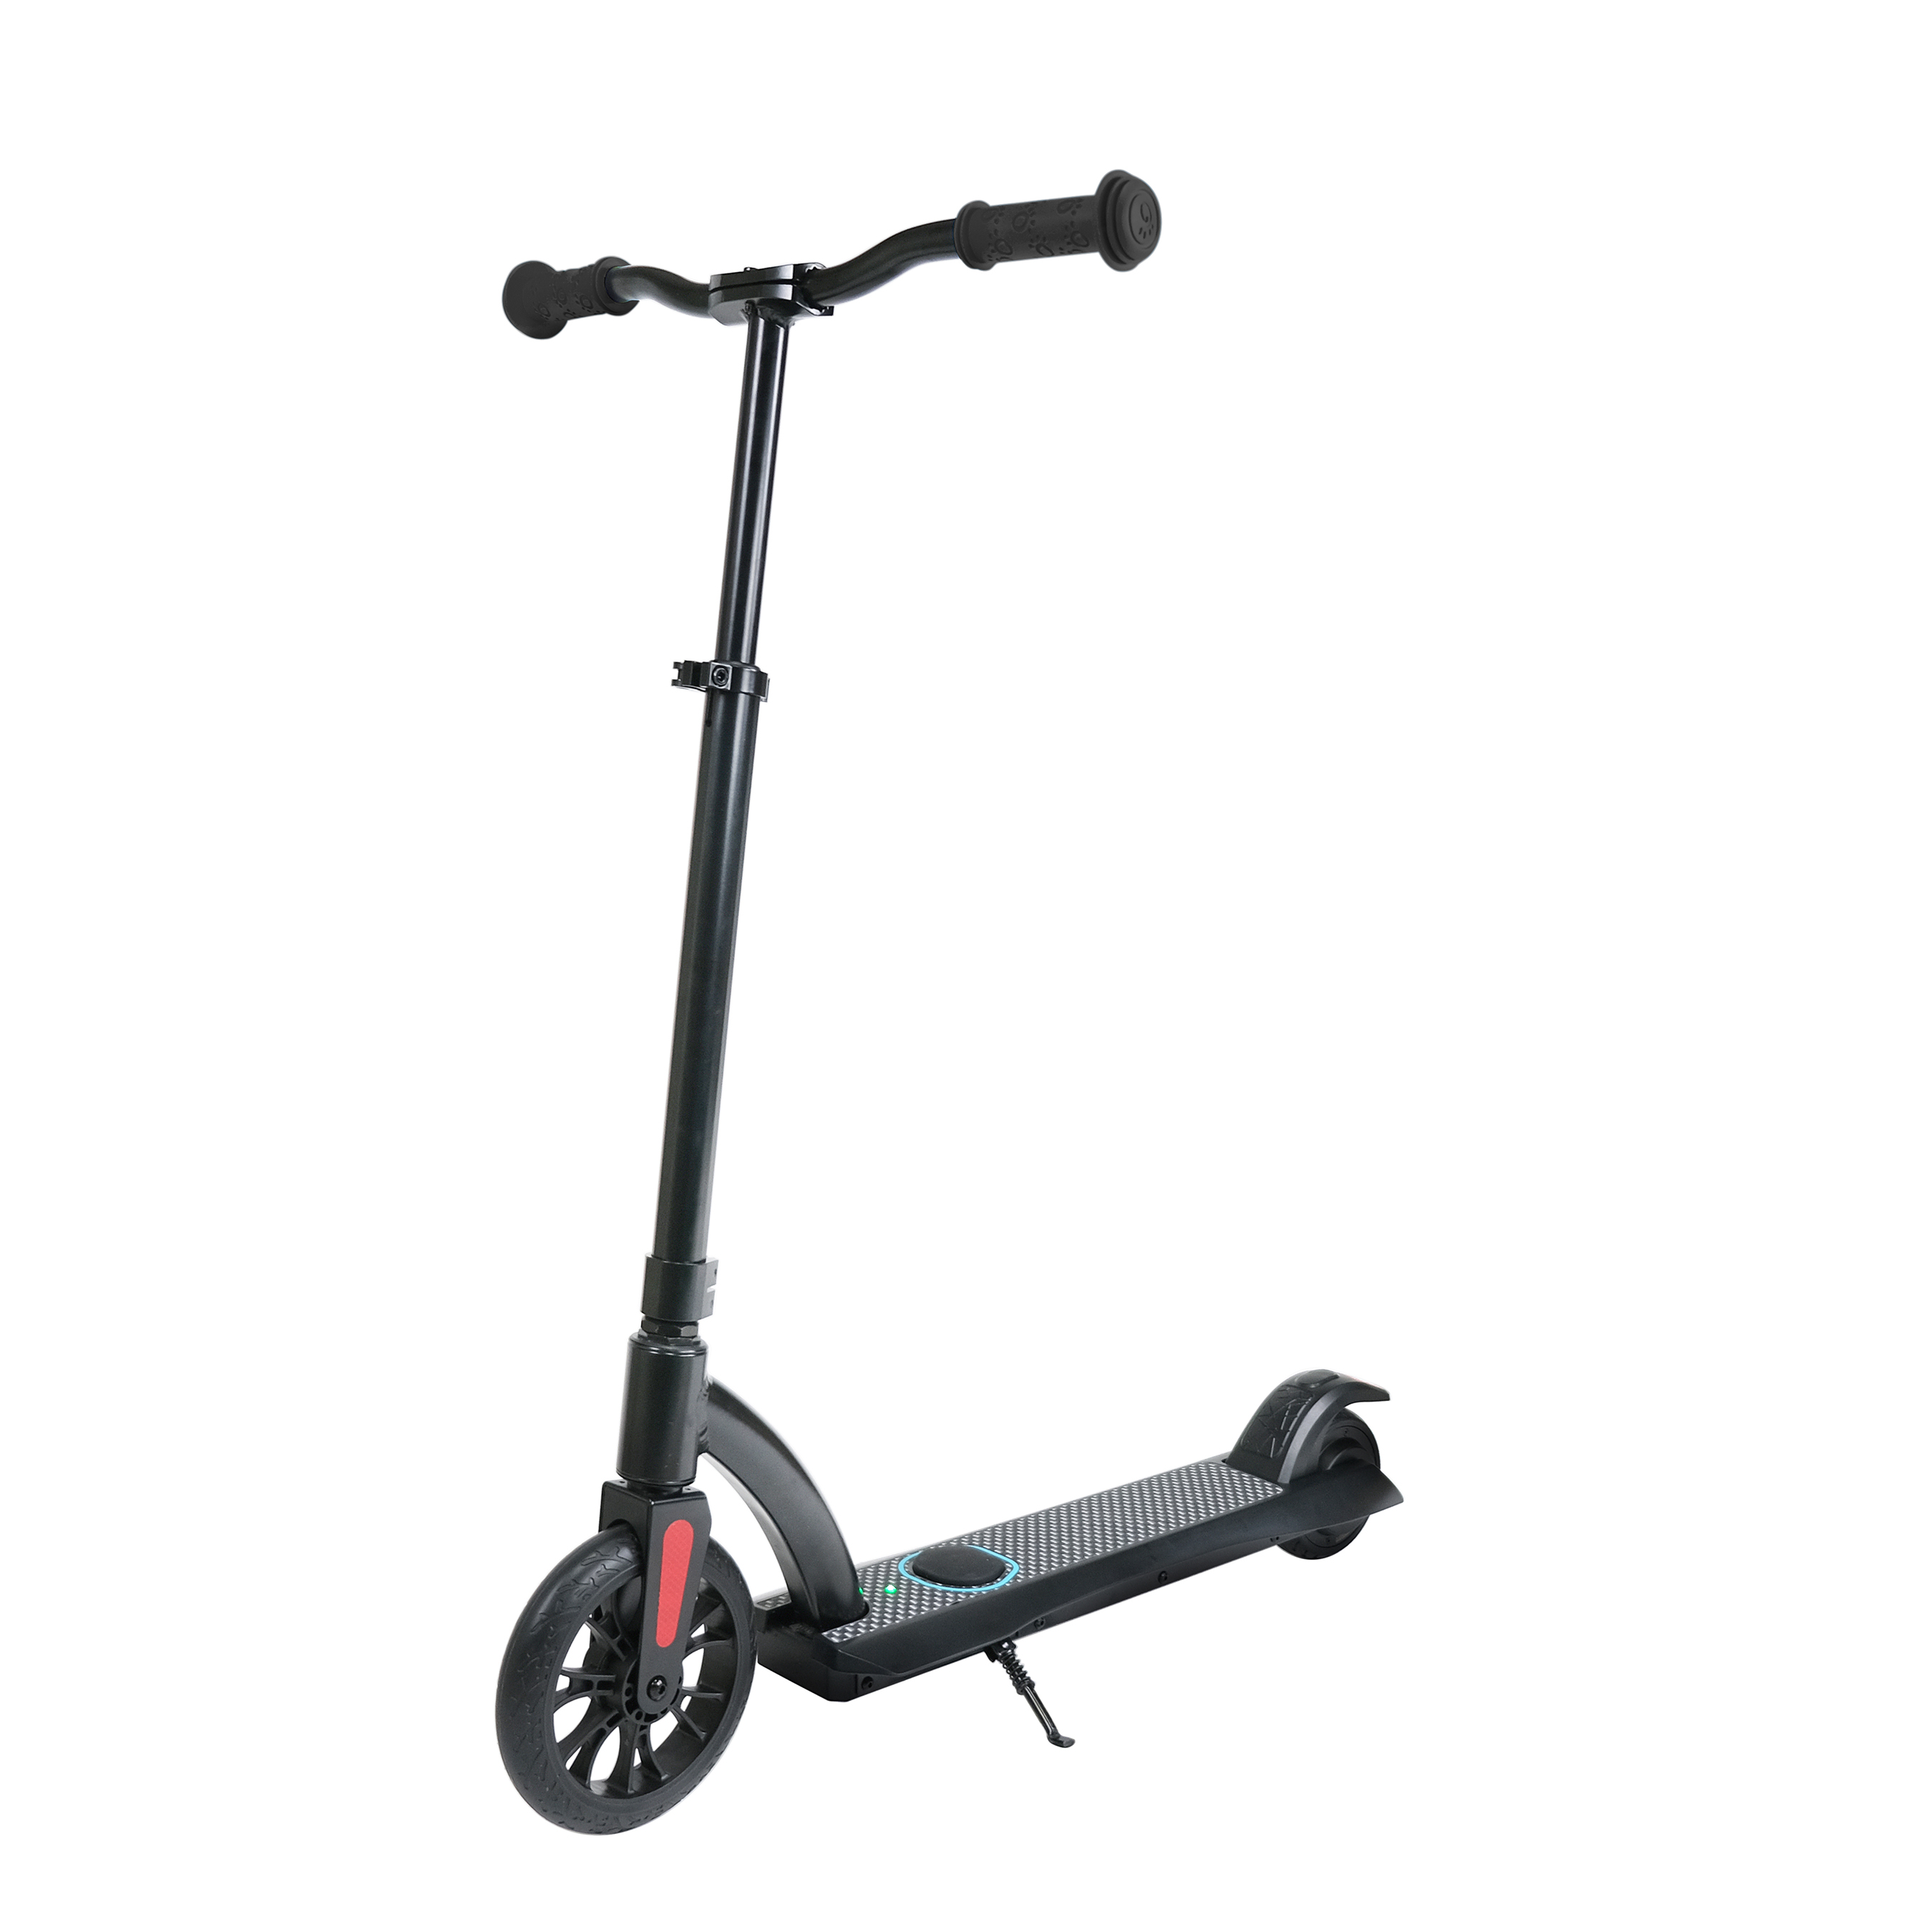 18V 150w about 9-12KM/h Range Aluminium+ABS+PC+Silicon Kid Electric Scooter